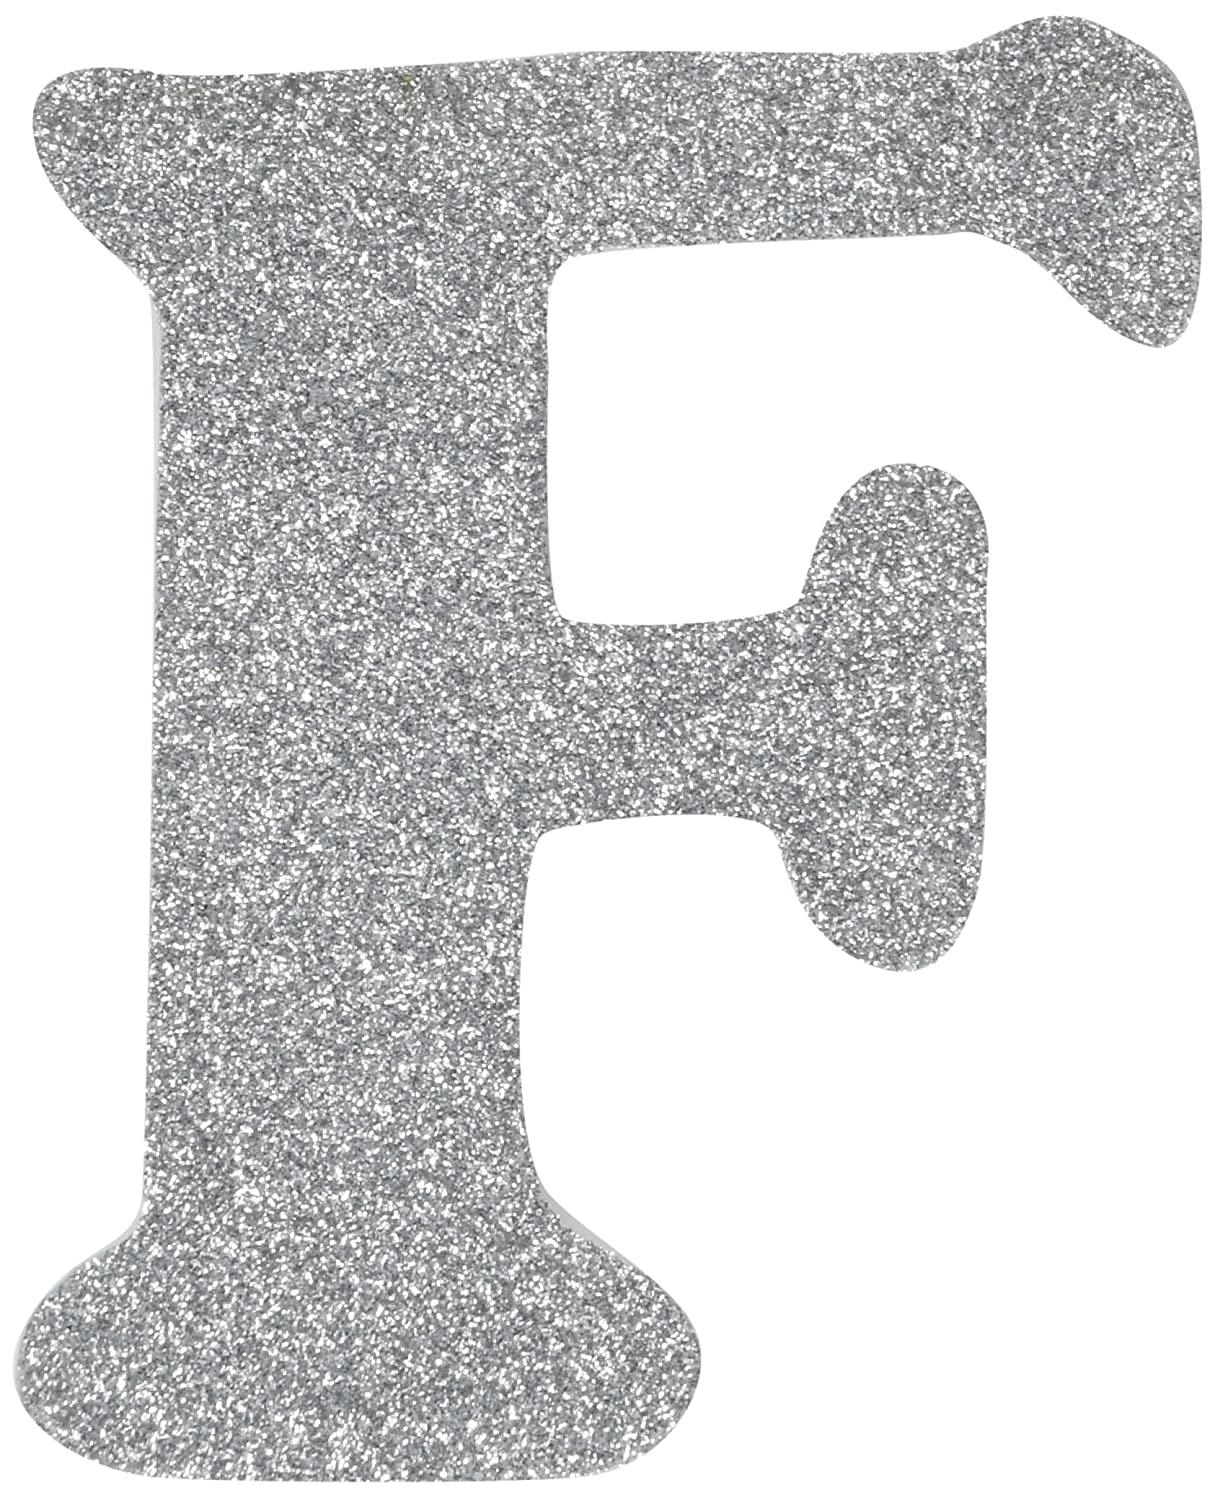 Darice 9190-964F Wood Letter F, Assorted Glitter